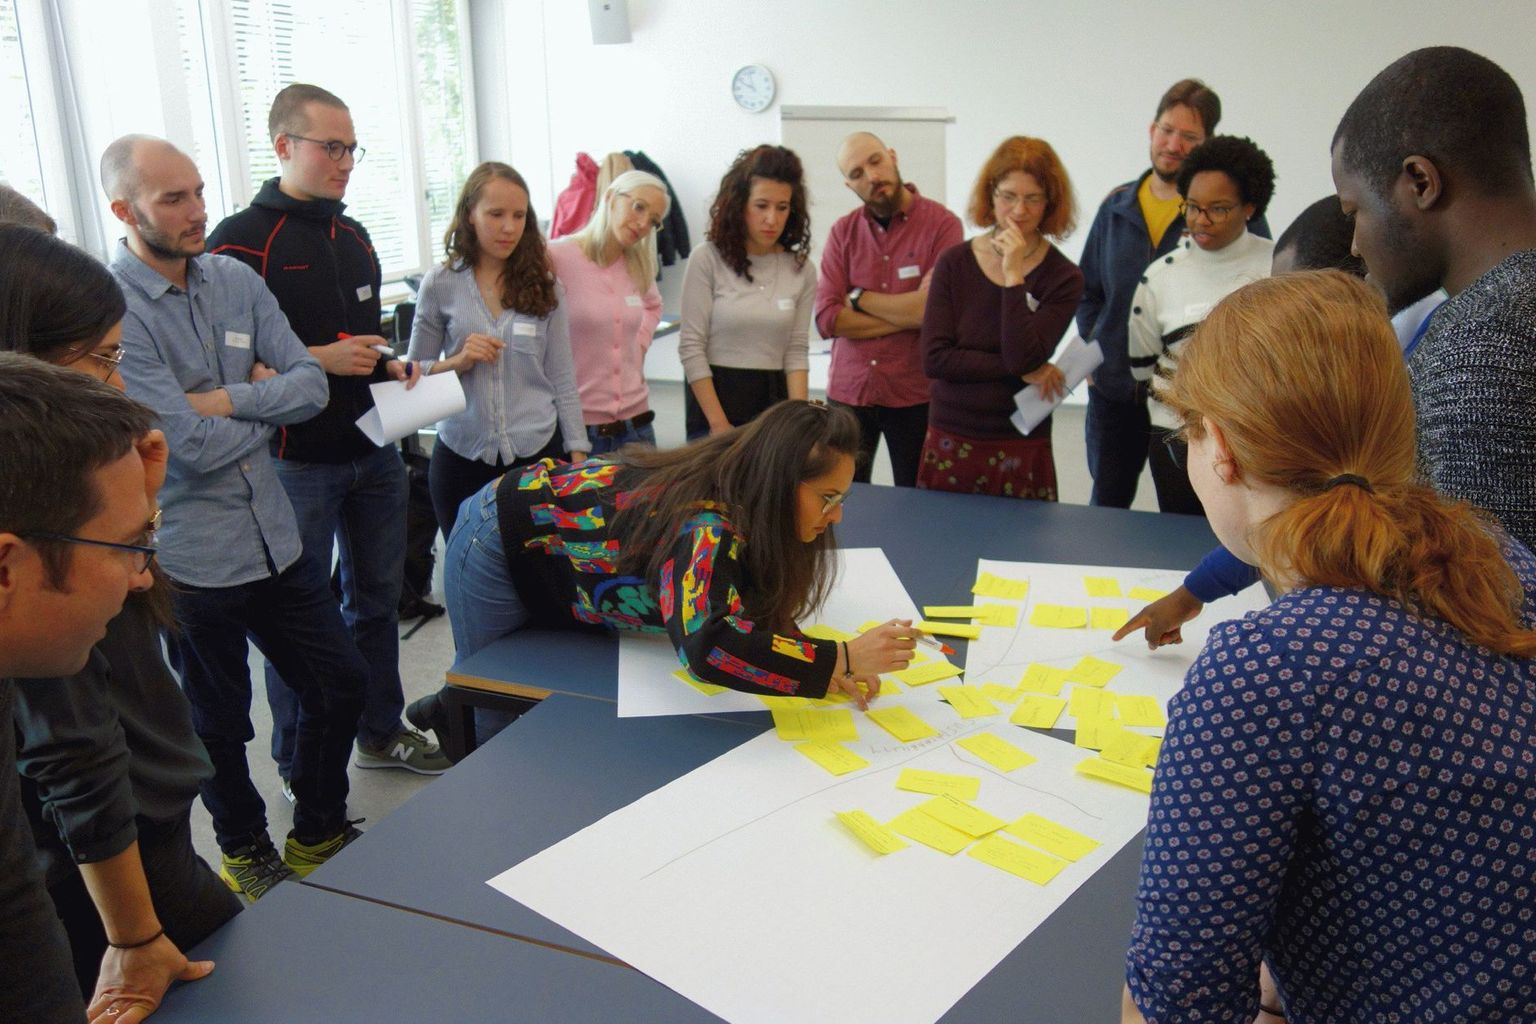 Early Career Scientist Transdisciplinary Workshop - image 1